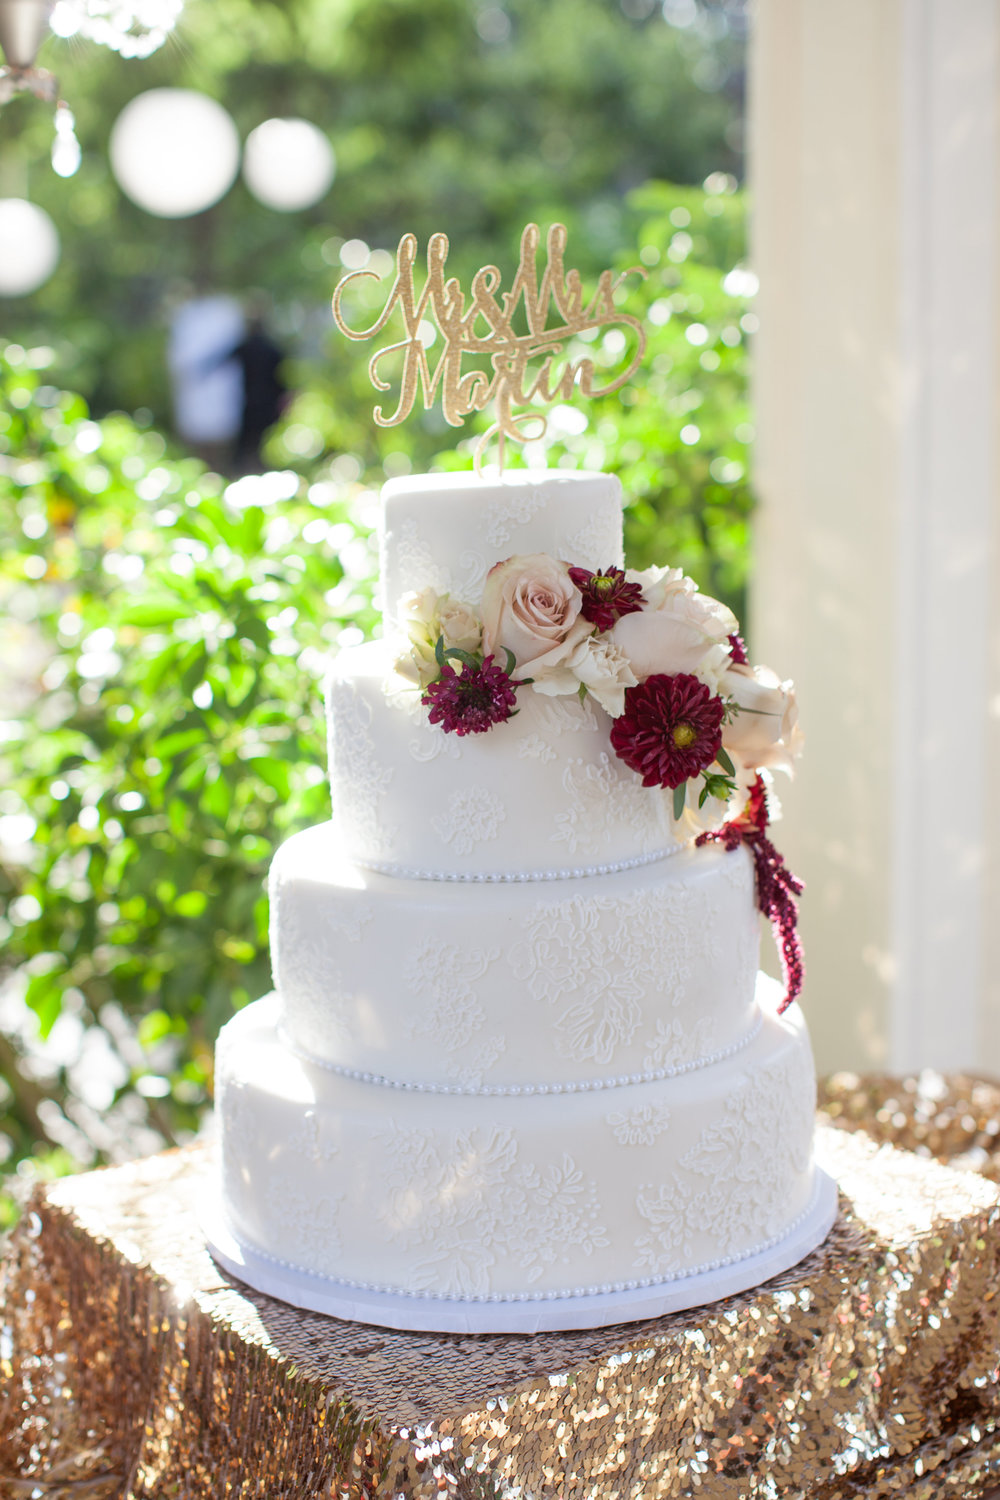 Lace, cream and merlot wedding cake.